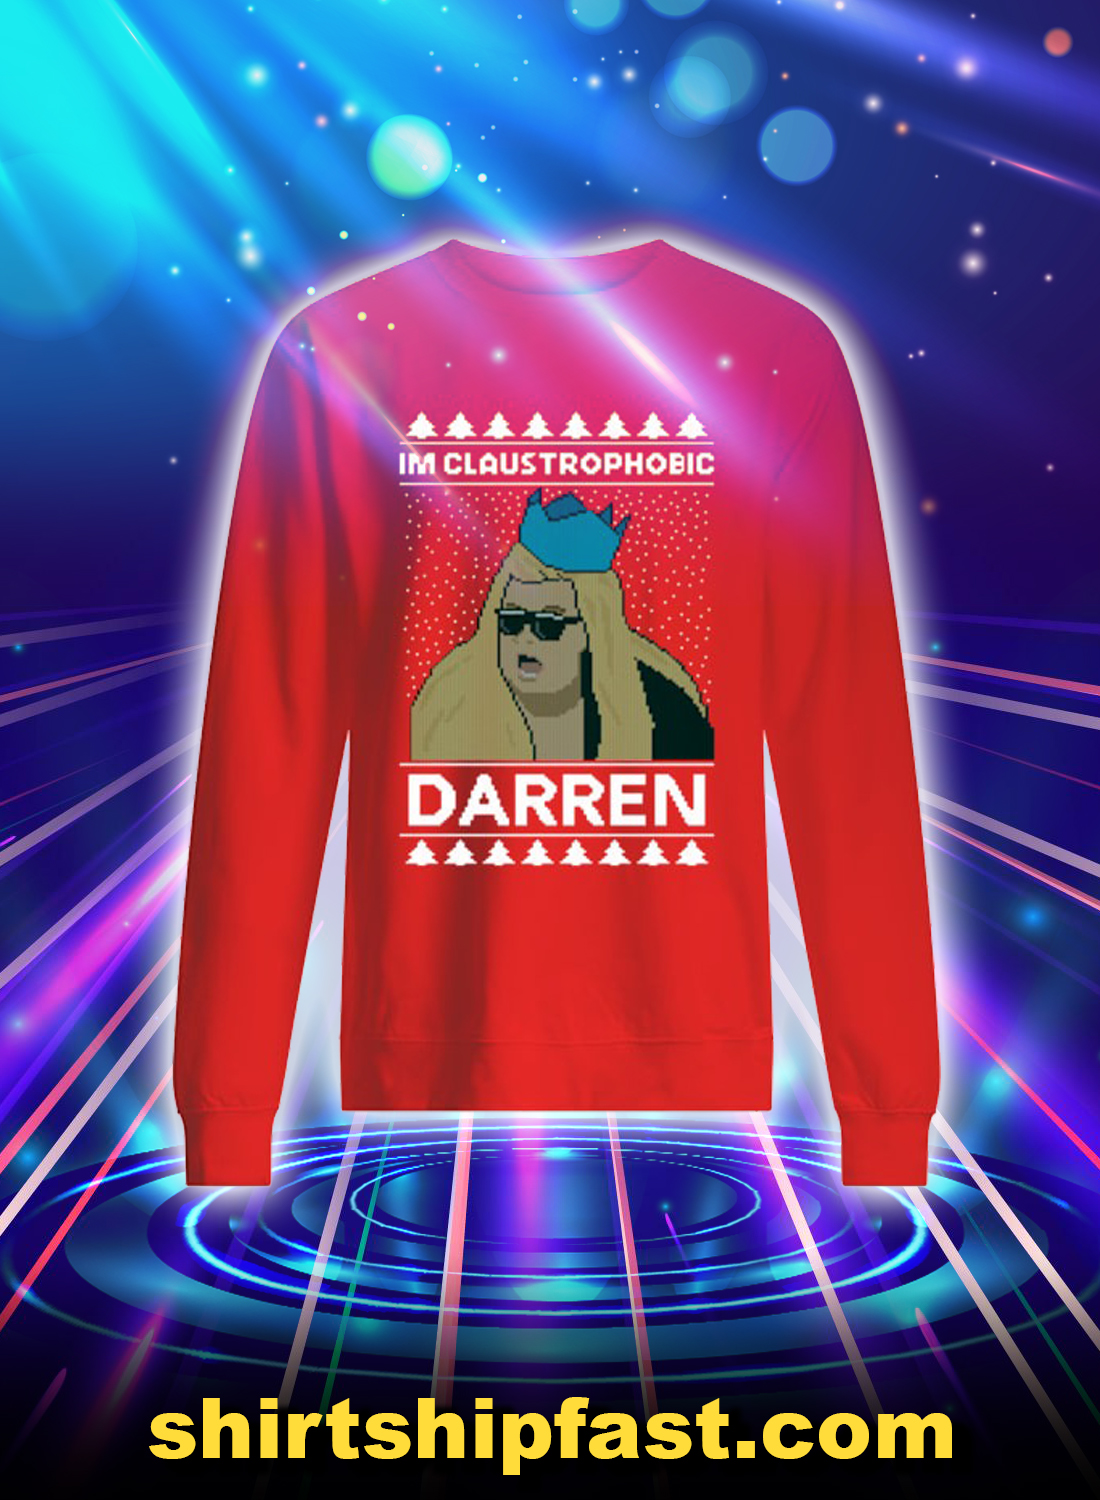 I'm claustrophobic darren christmas sweatshirt and jumper - Red